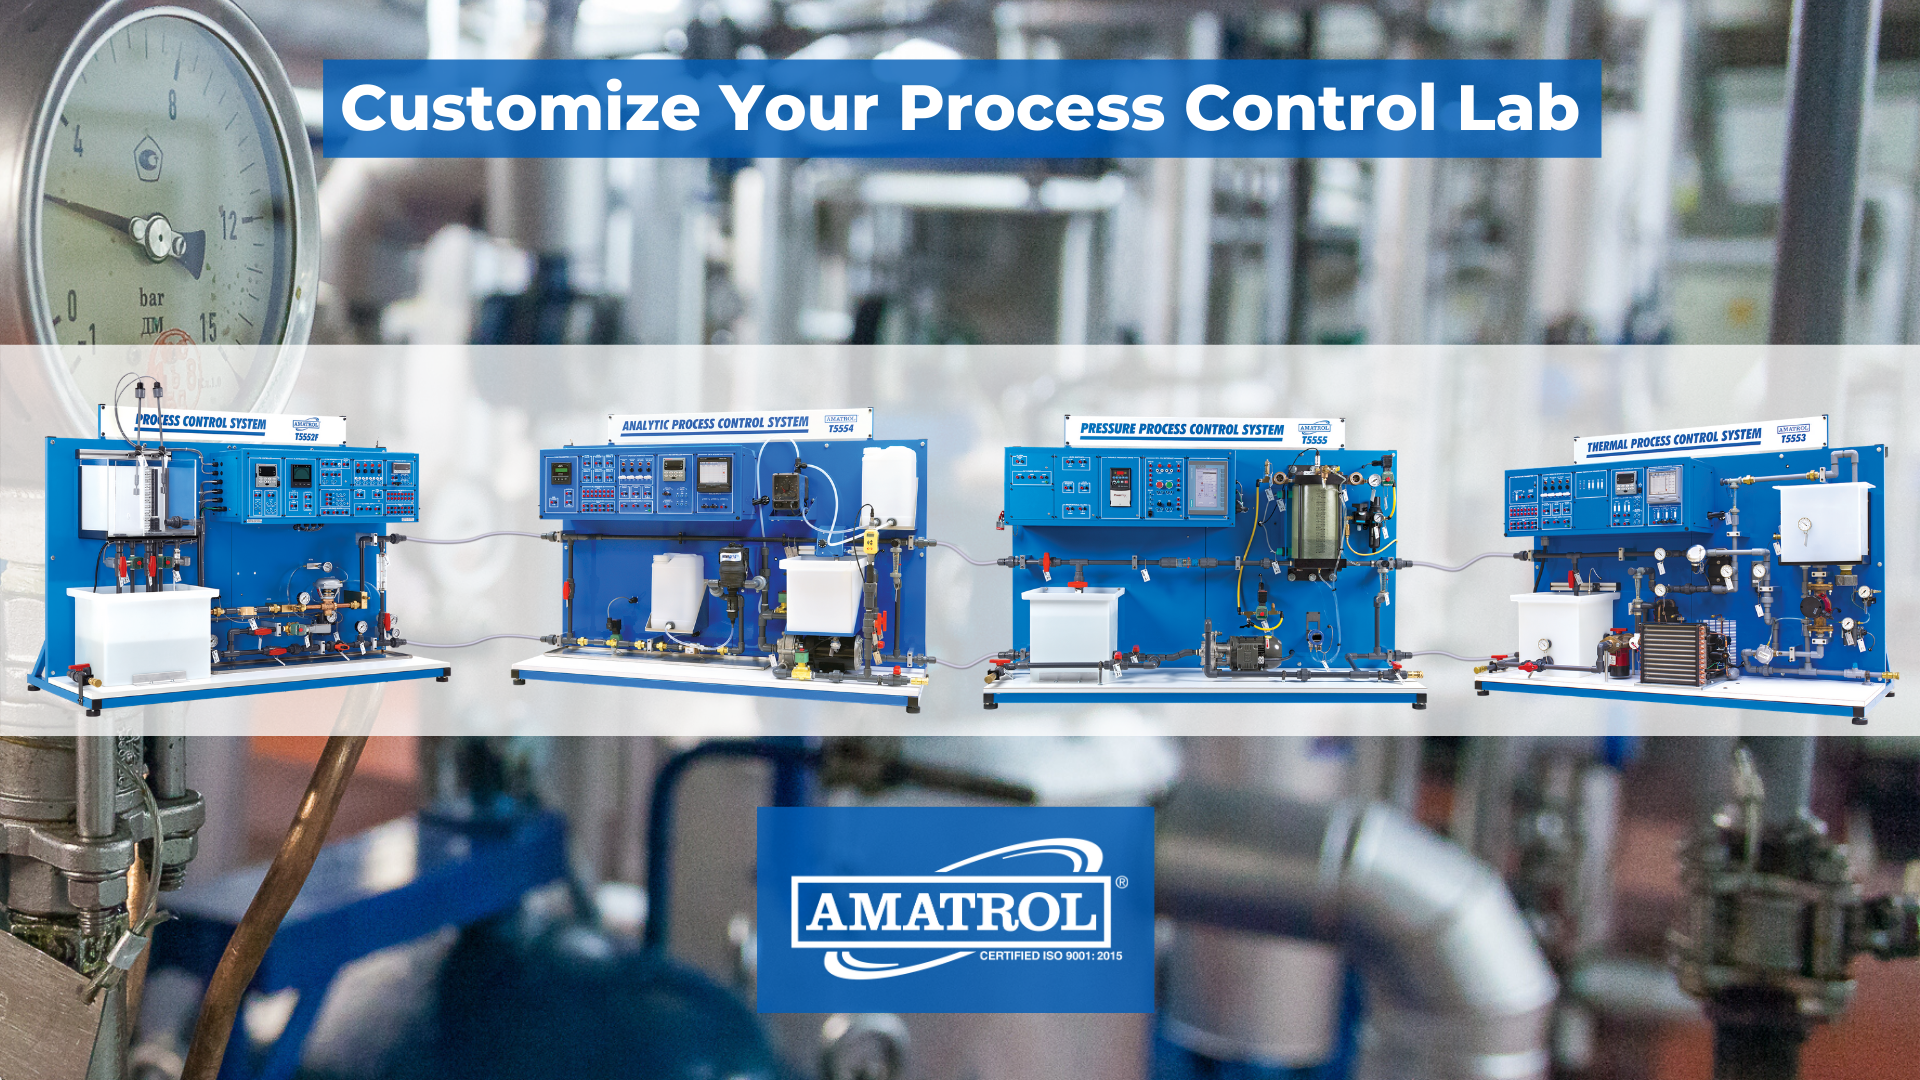 Amatrol Process Control Training Systems